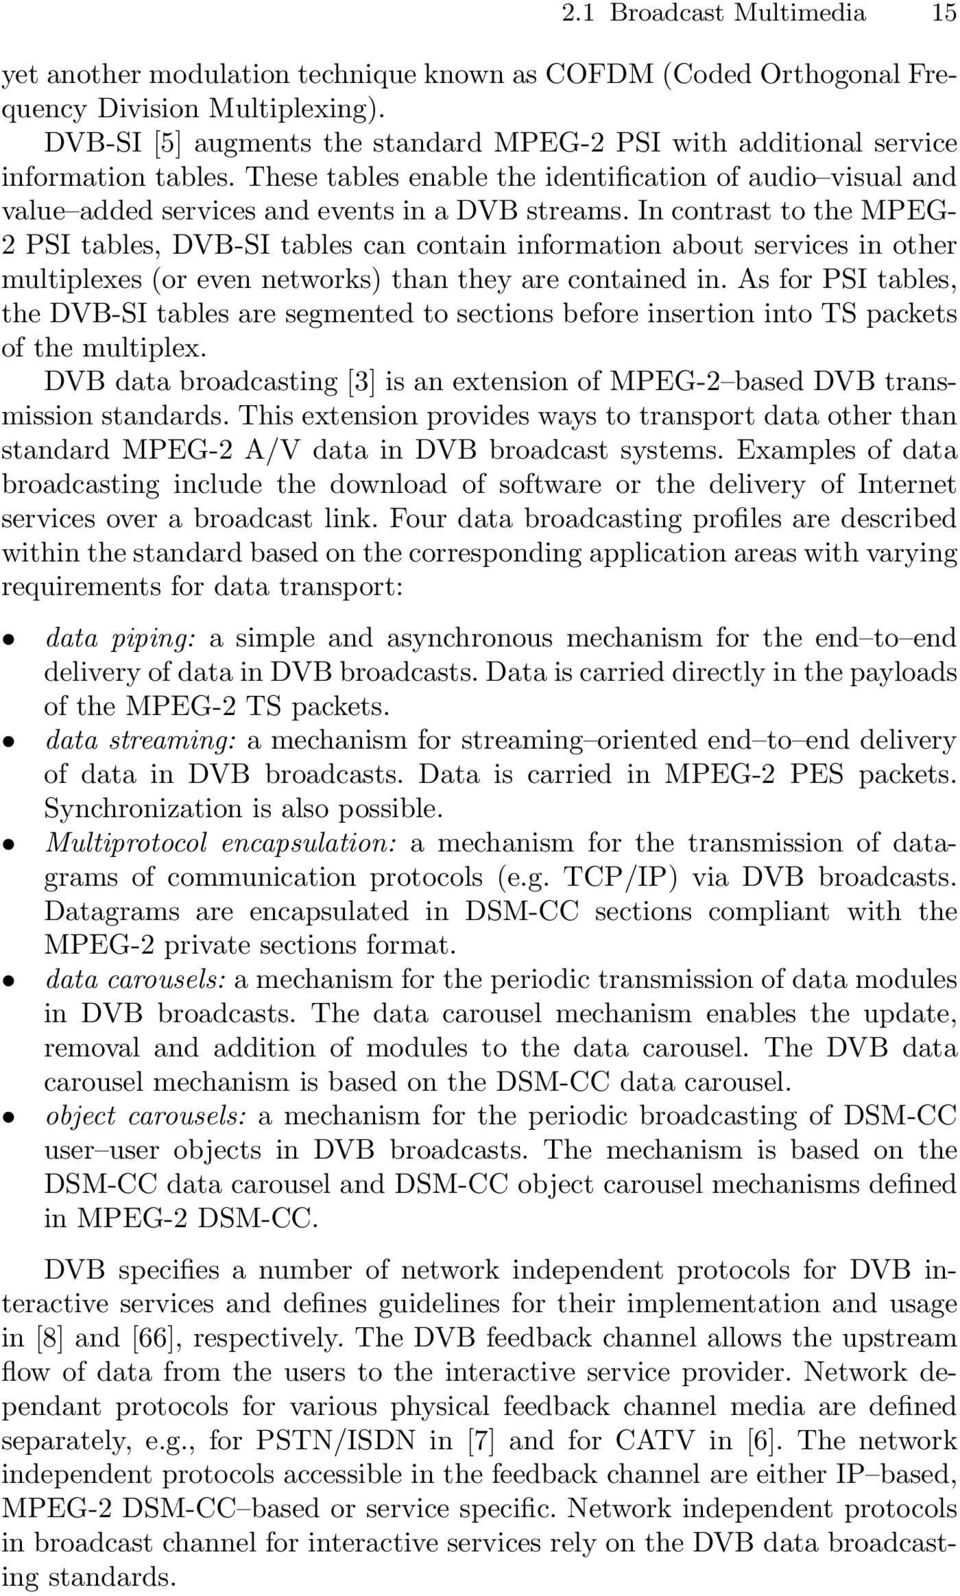 In contrast to the MPEG- 2 PSI tables, DVB-SI tables can contain information about services in other multiplexes (or even networks) than they are contained in.